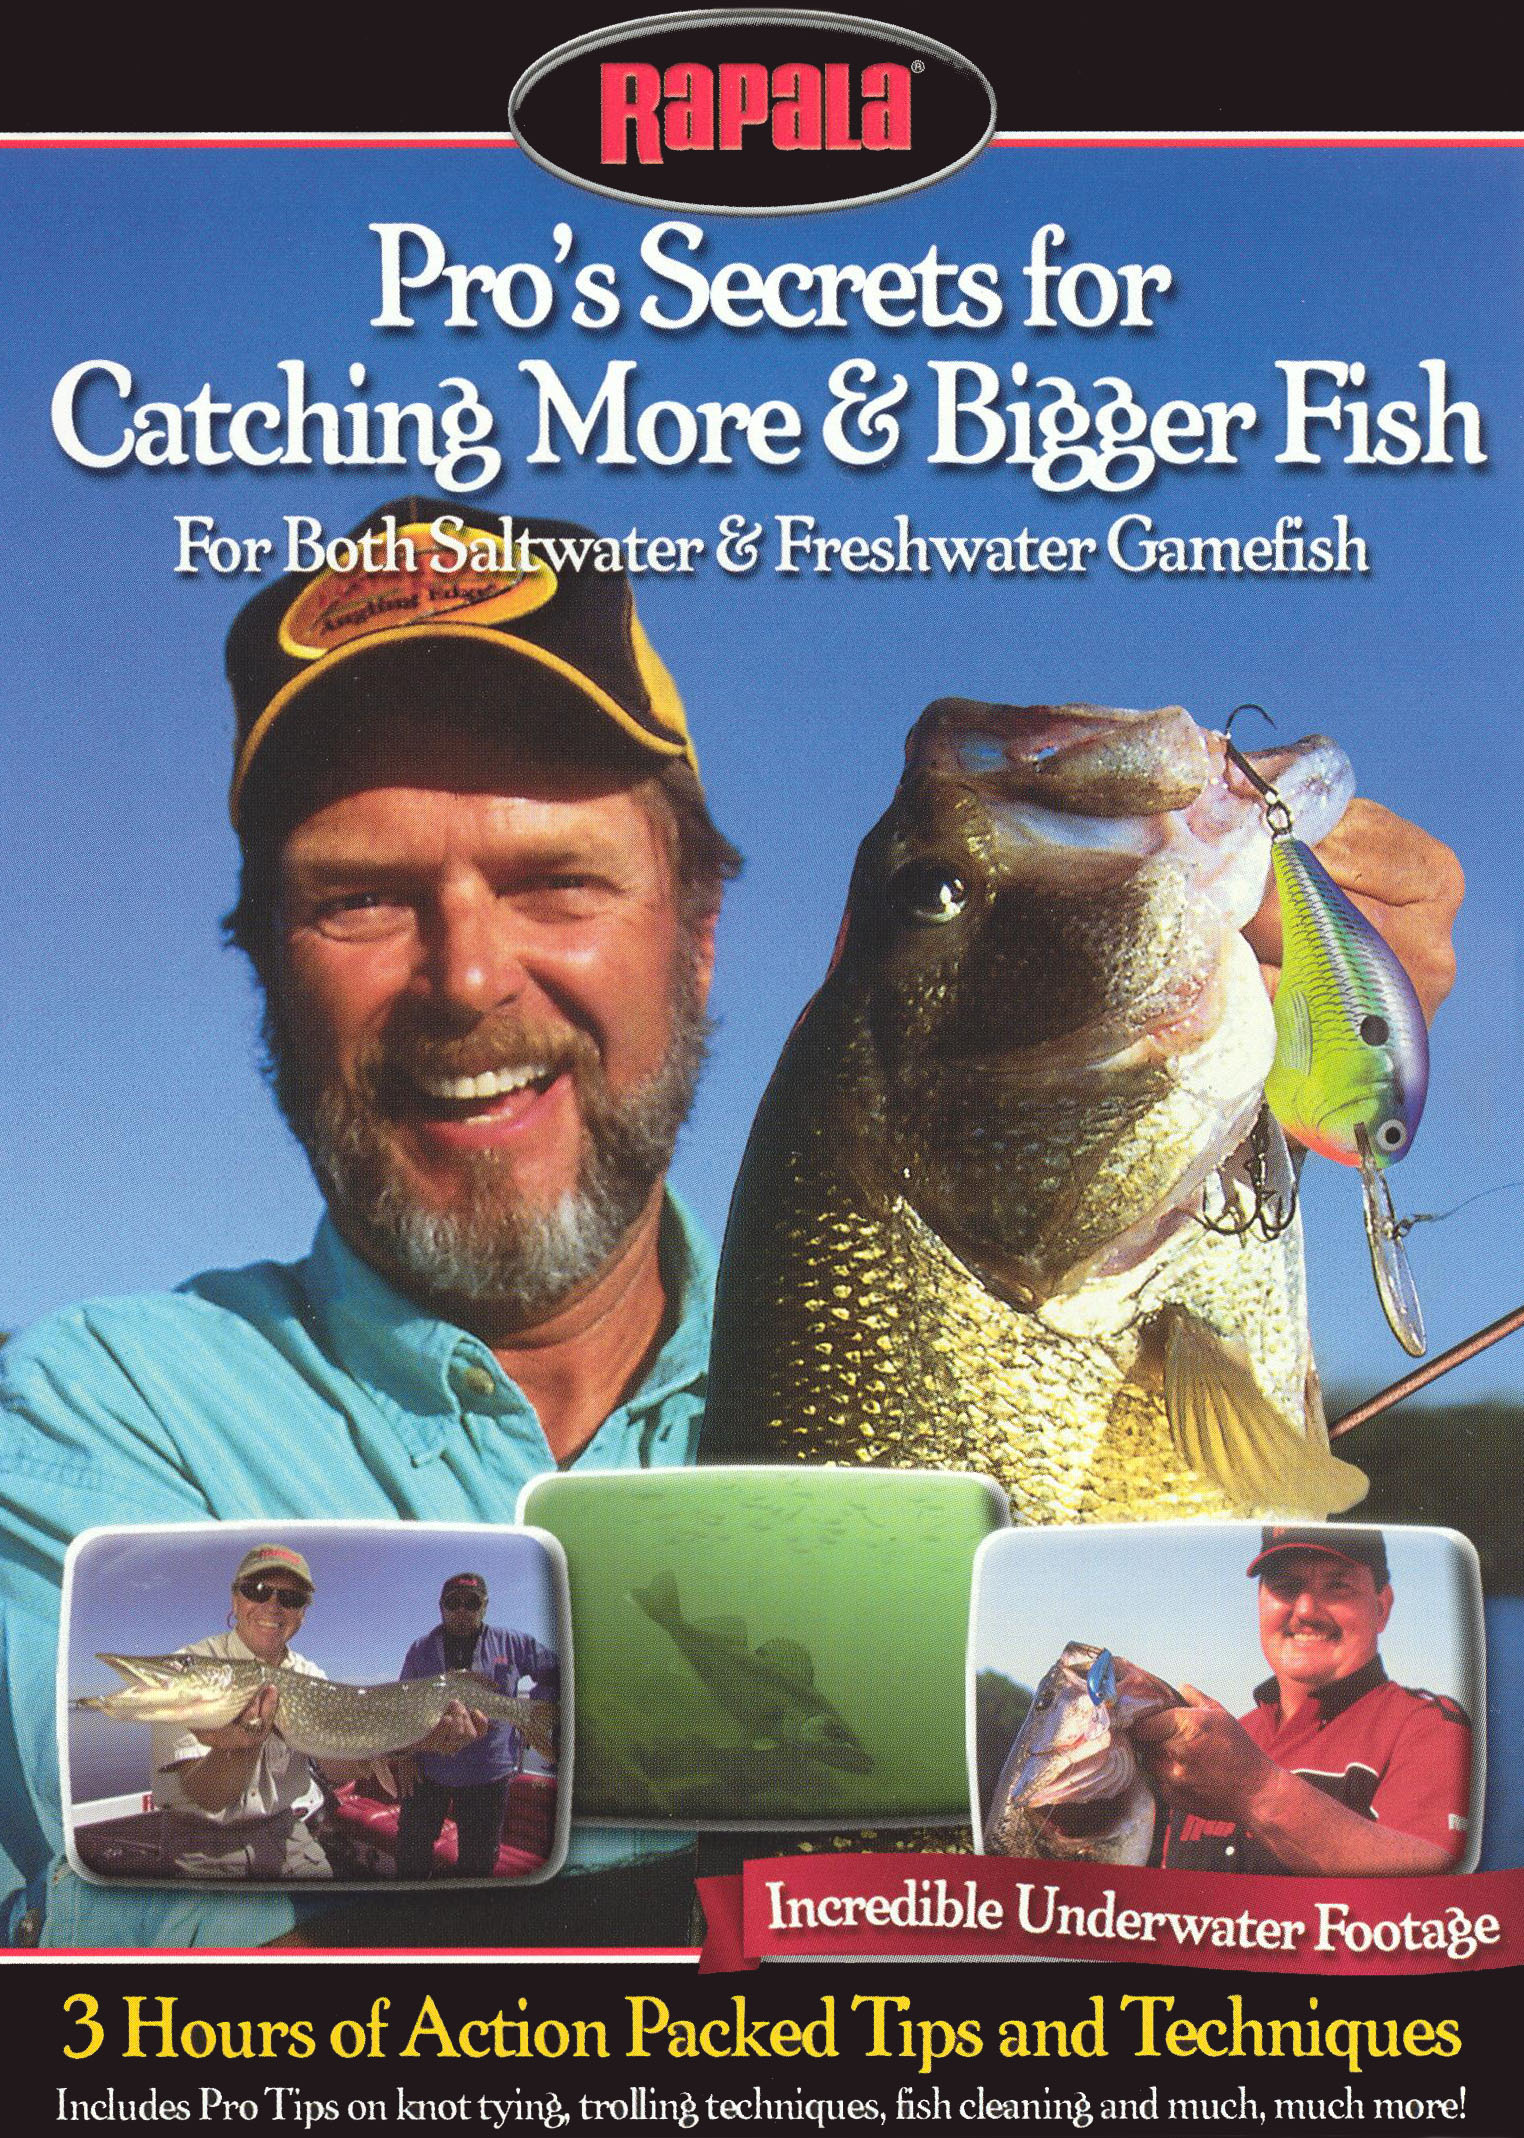 Pro's Secrets For Catching More & Bigger Fish